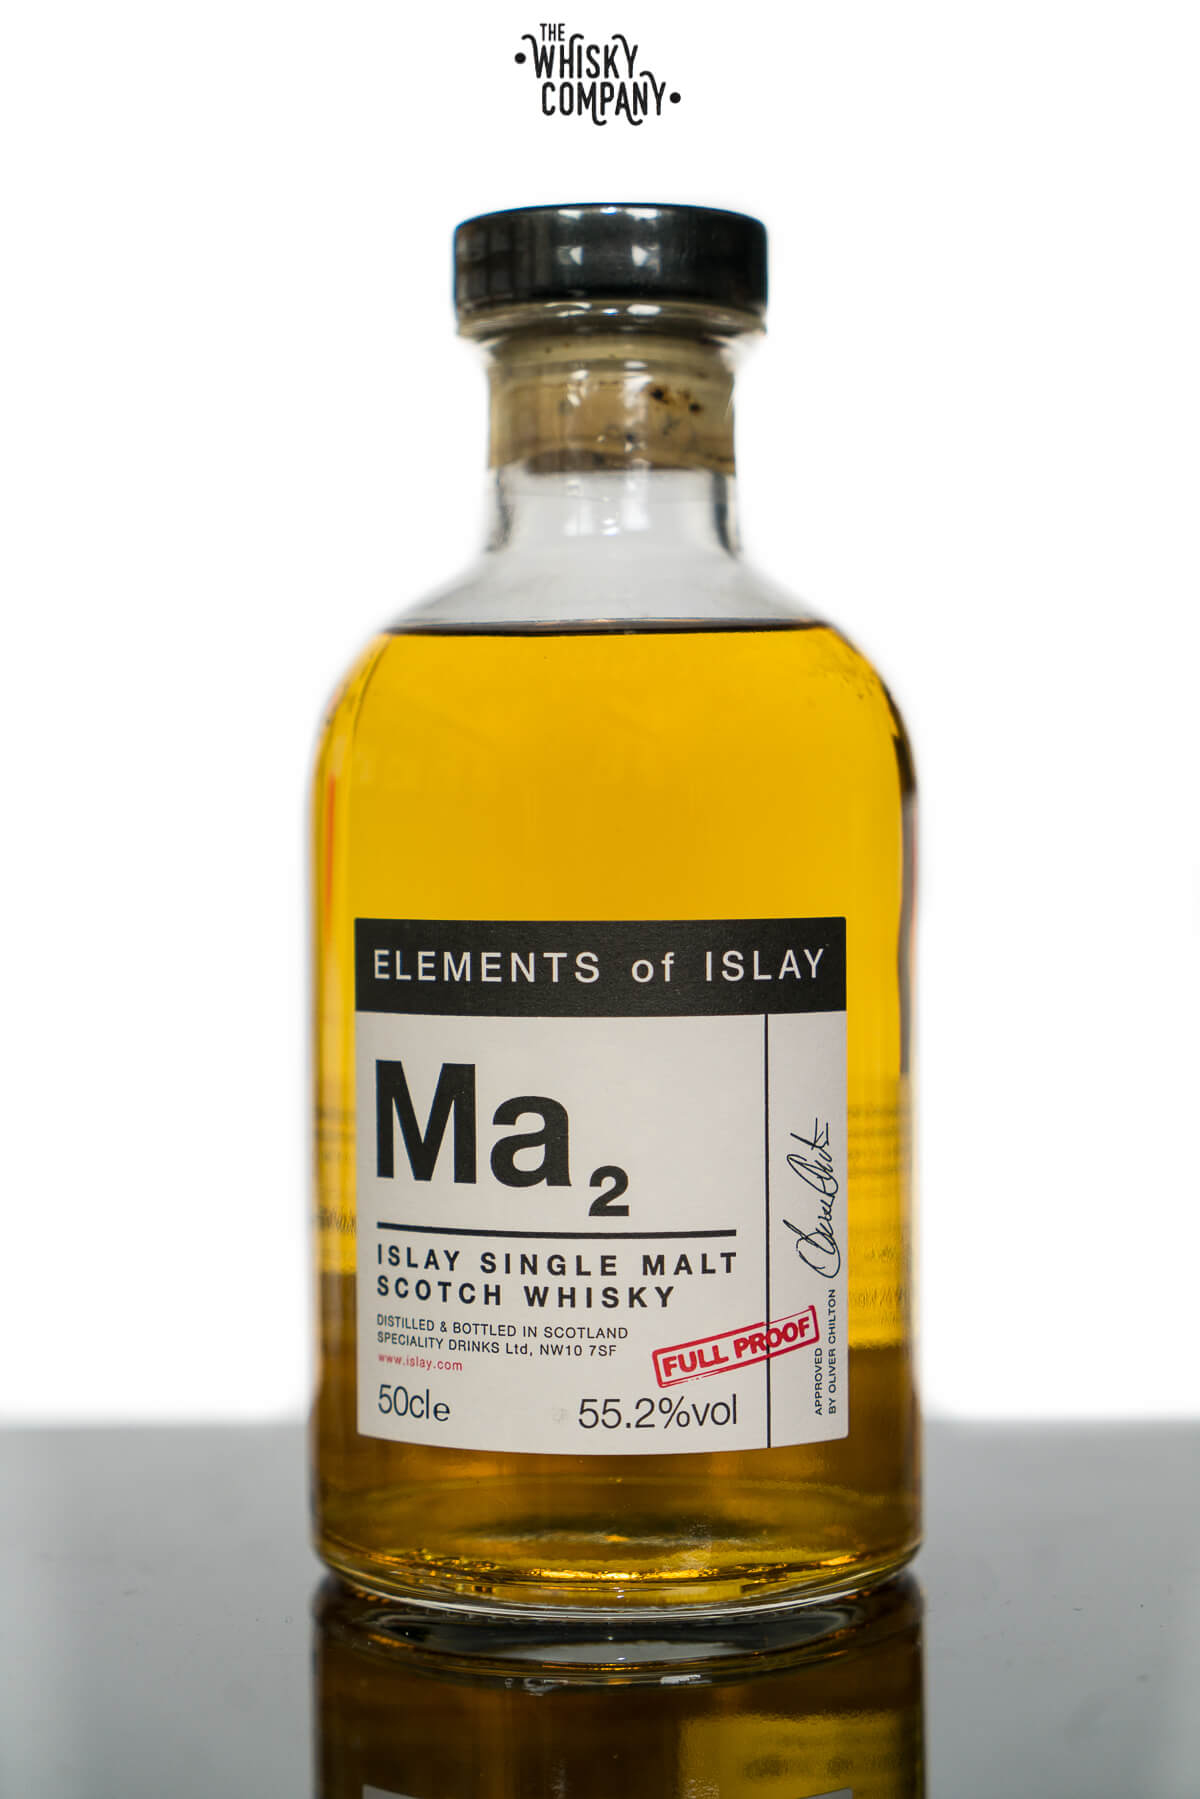 Elements Of Islay Ma2 Islay Single Malt Scotch Whisky (500ml)